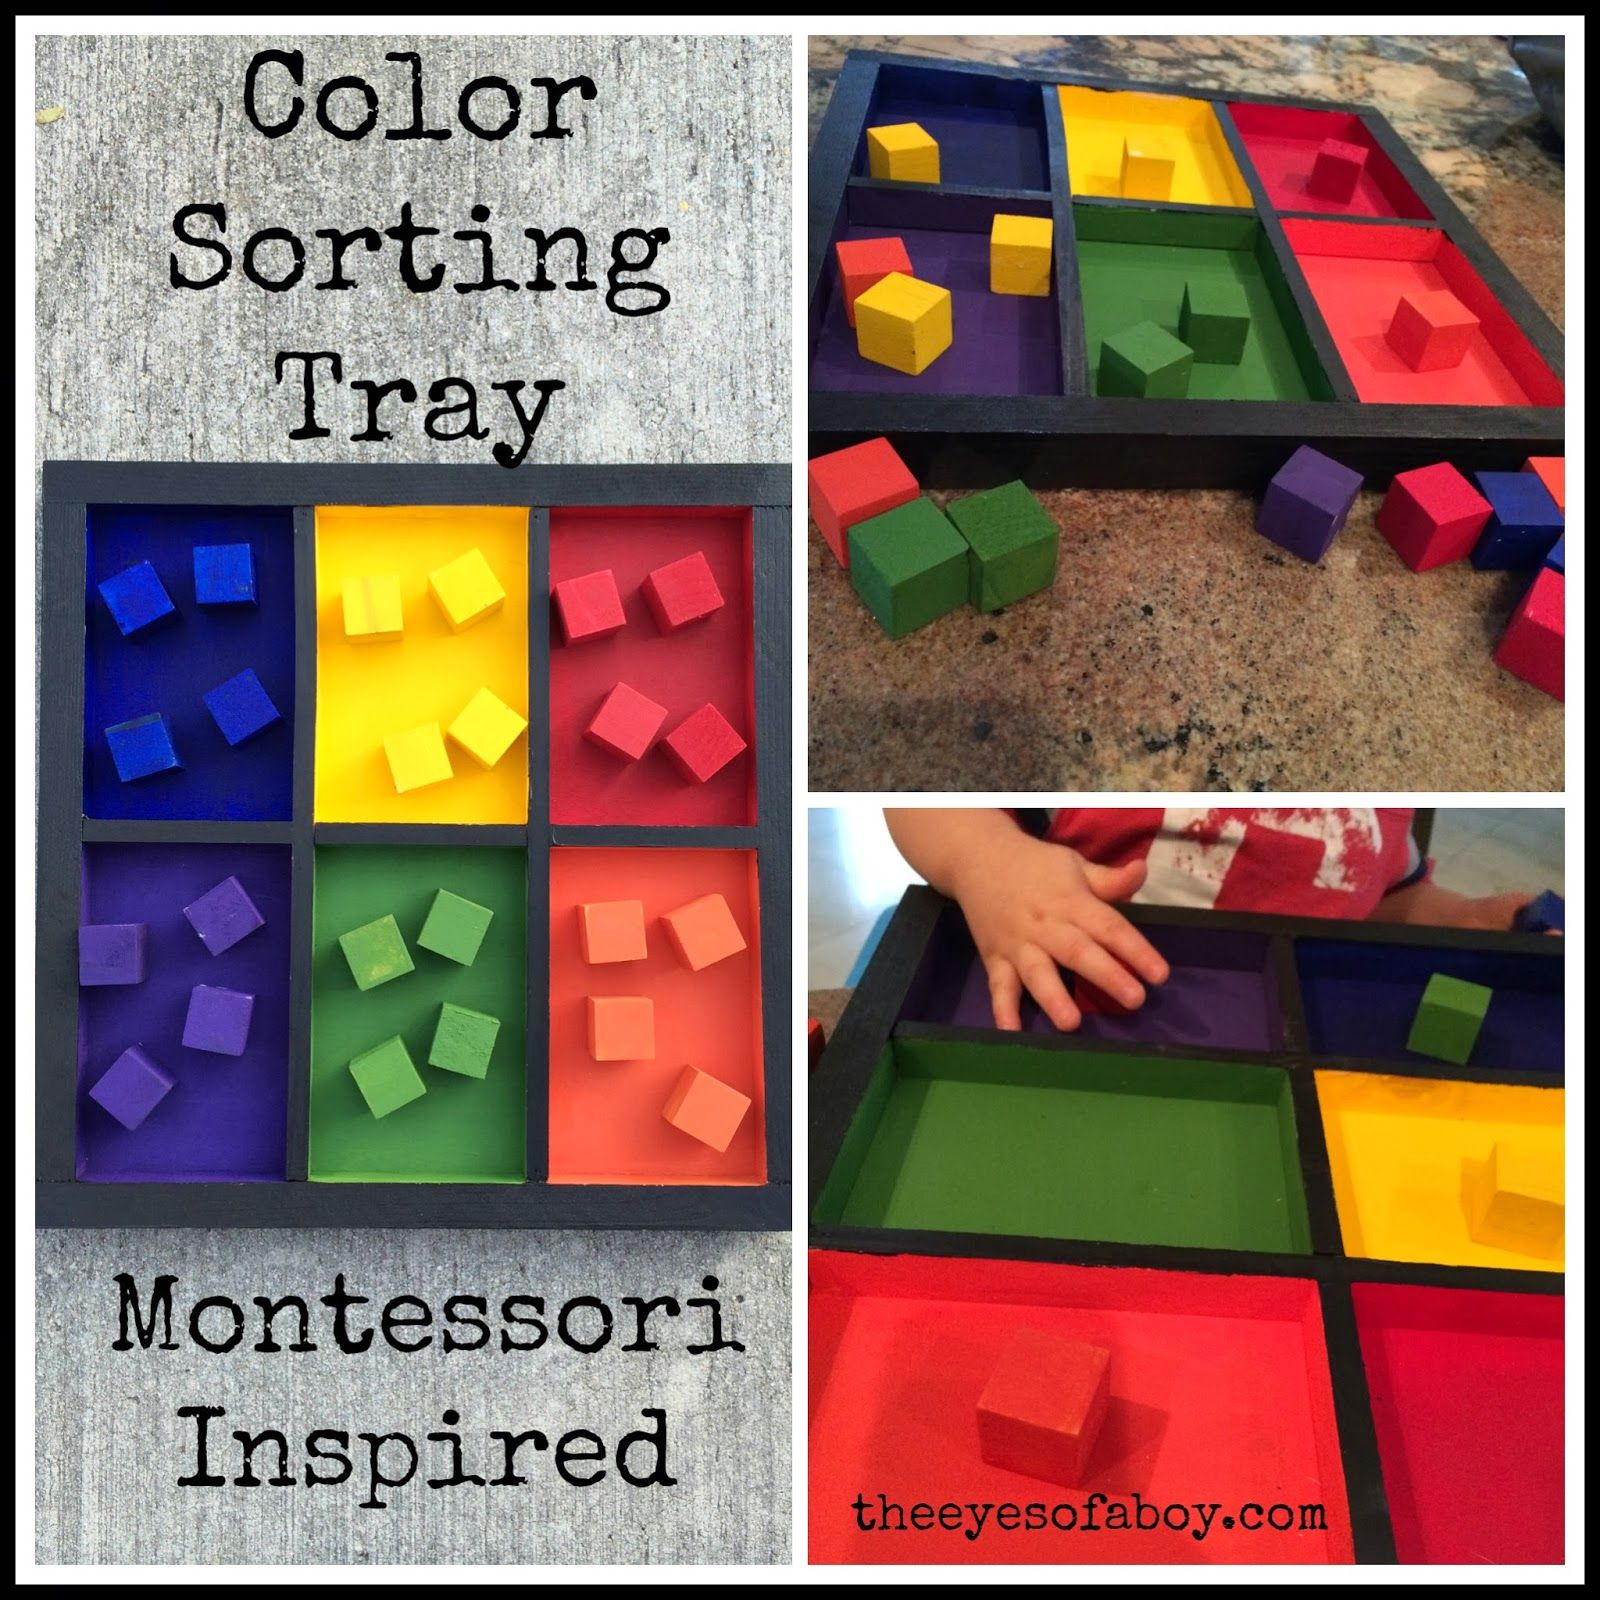 montessori inspired wooden color sorting tray diy learning activity for toddlers and preschoolers - Colour Games For Preschool